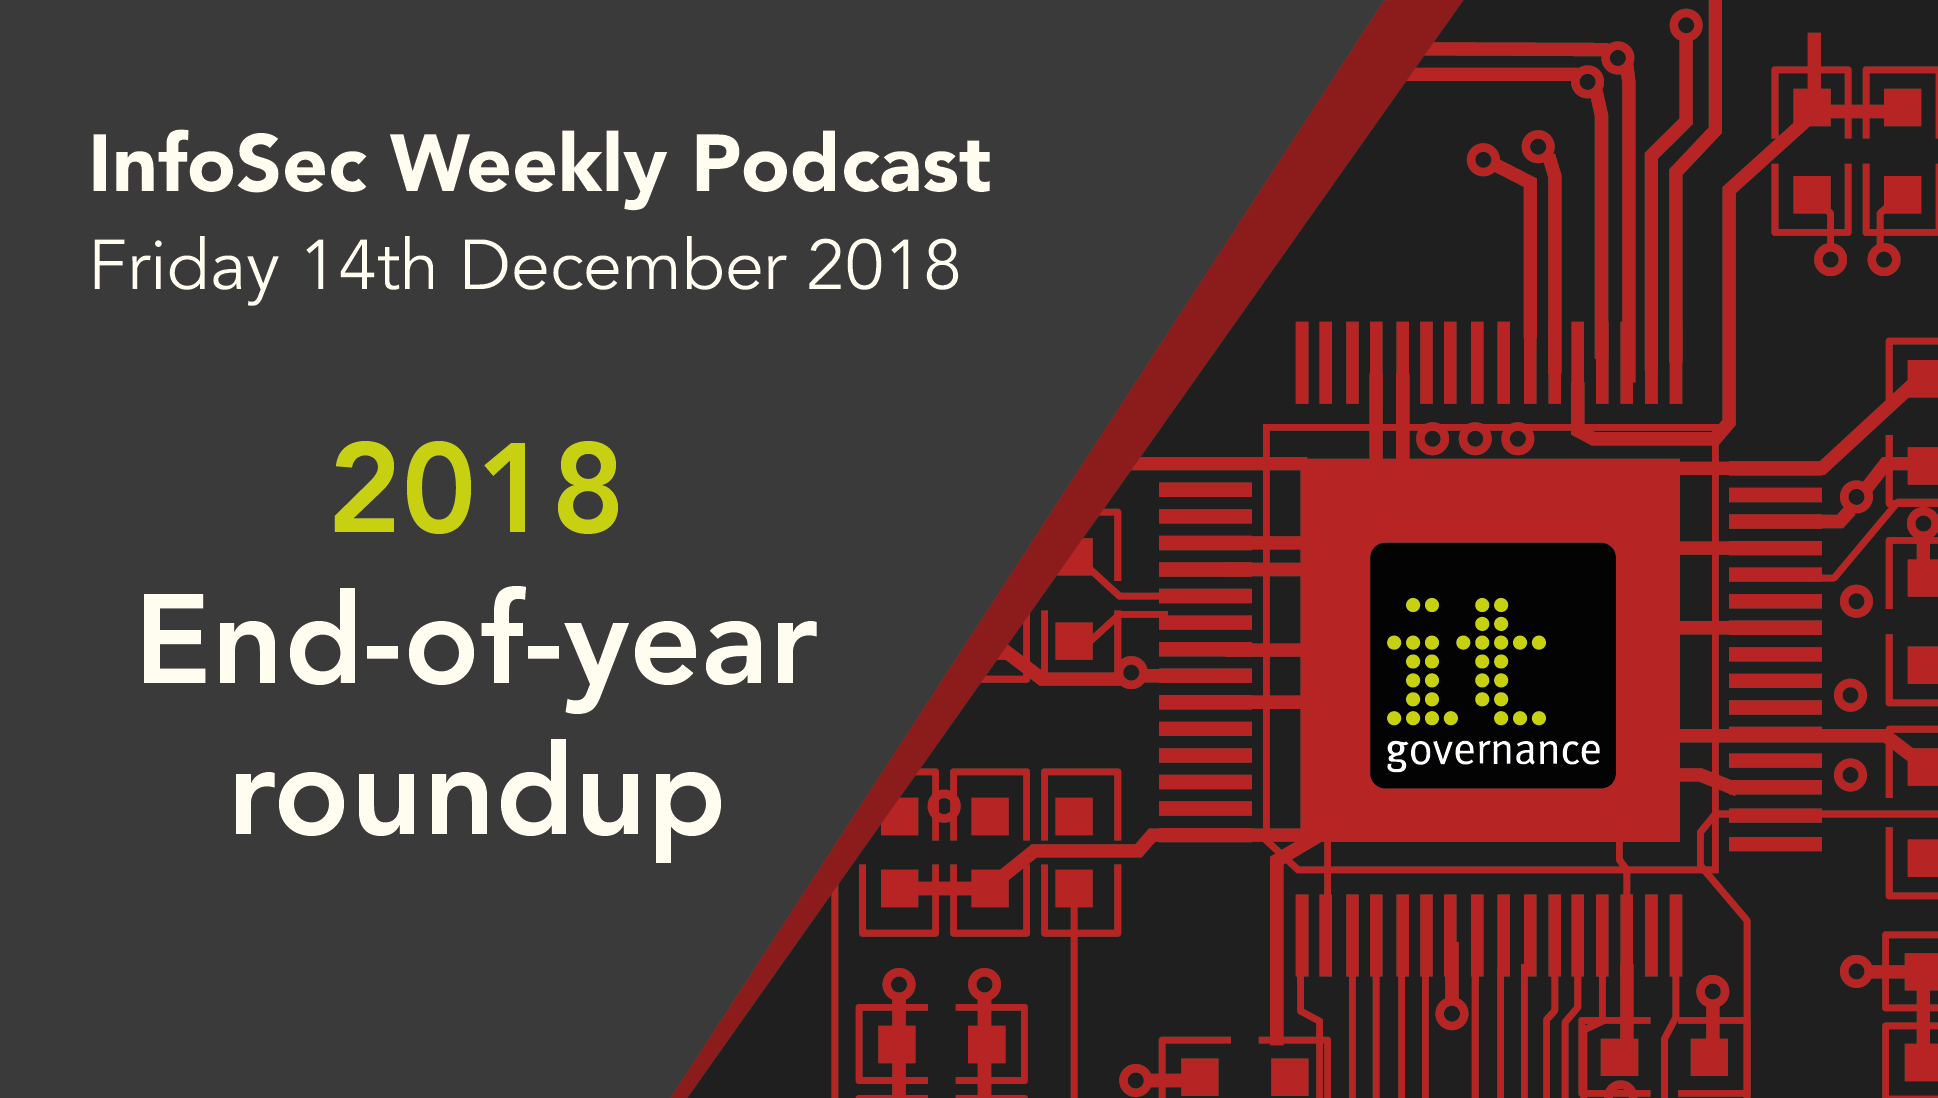 Weekly podcast: 2018 end-of-year roundup - IT Governance Blog